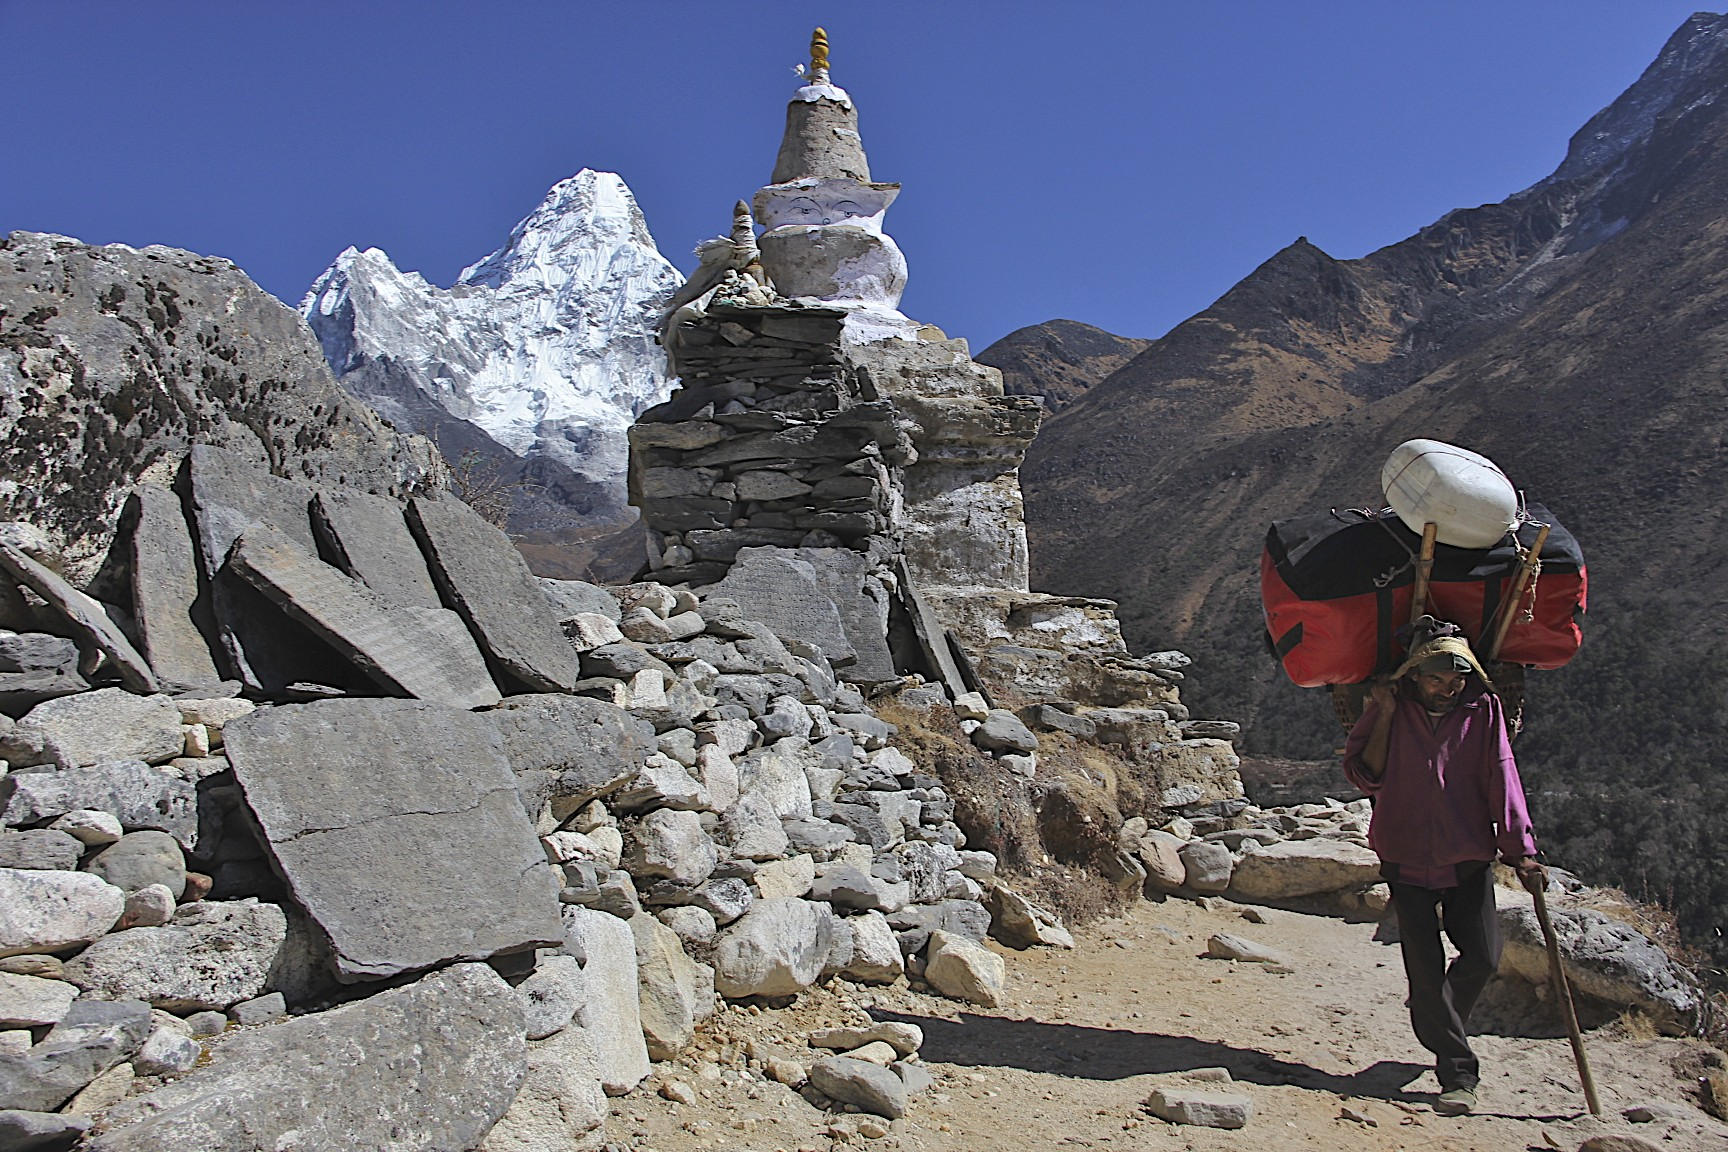 En route to Namche Bazar with Ama Dablam behind.